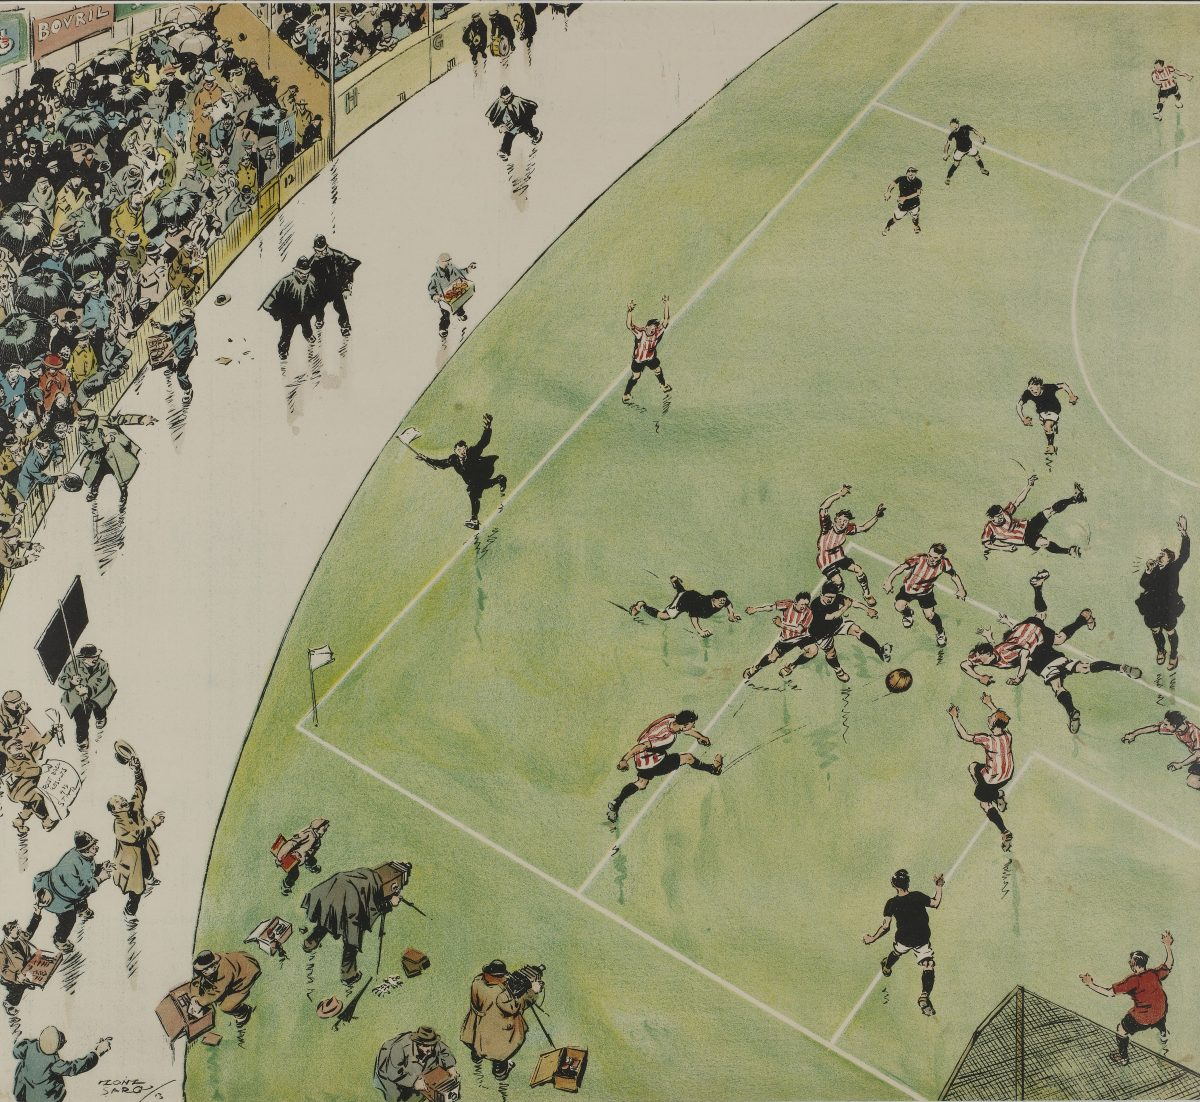 "Football Plate from ""Humours of London"" by Tony Sarg. Published by the Electric Underground Railway Company, printed by Johnson Riddle & Co. Color Print. Team playing soccer; crowd cheering. Originally large bound folio, 13 humorous scenes of London. March in the Underground calendar for 1914"